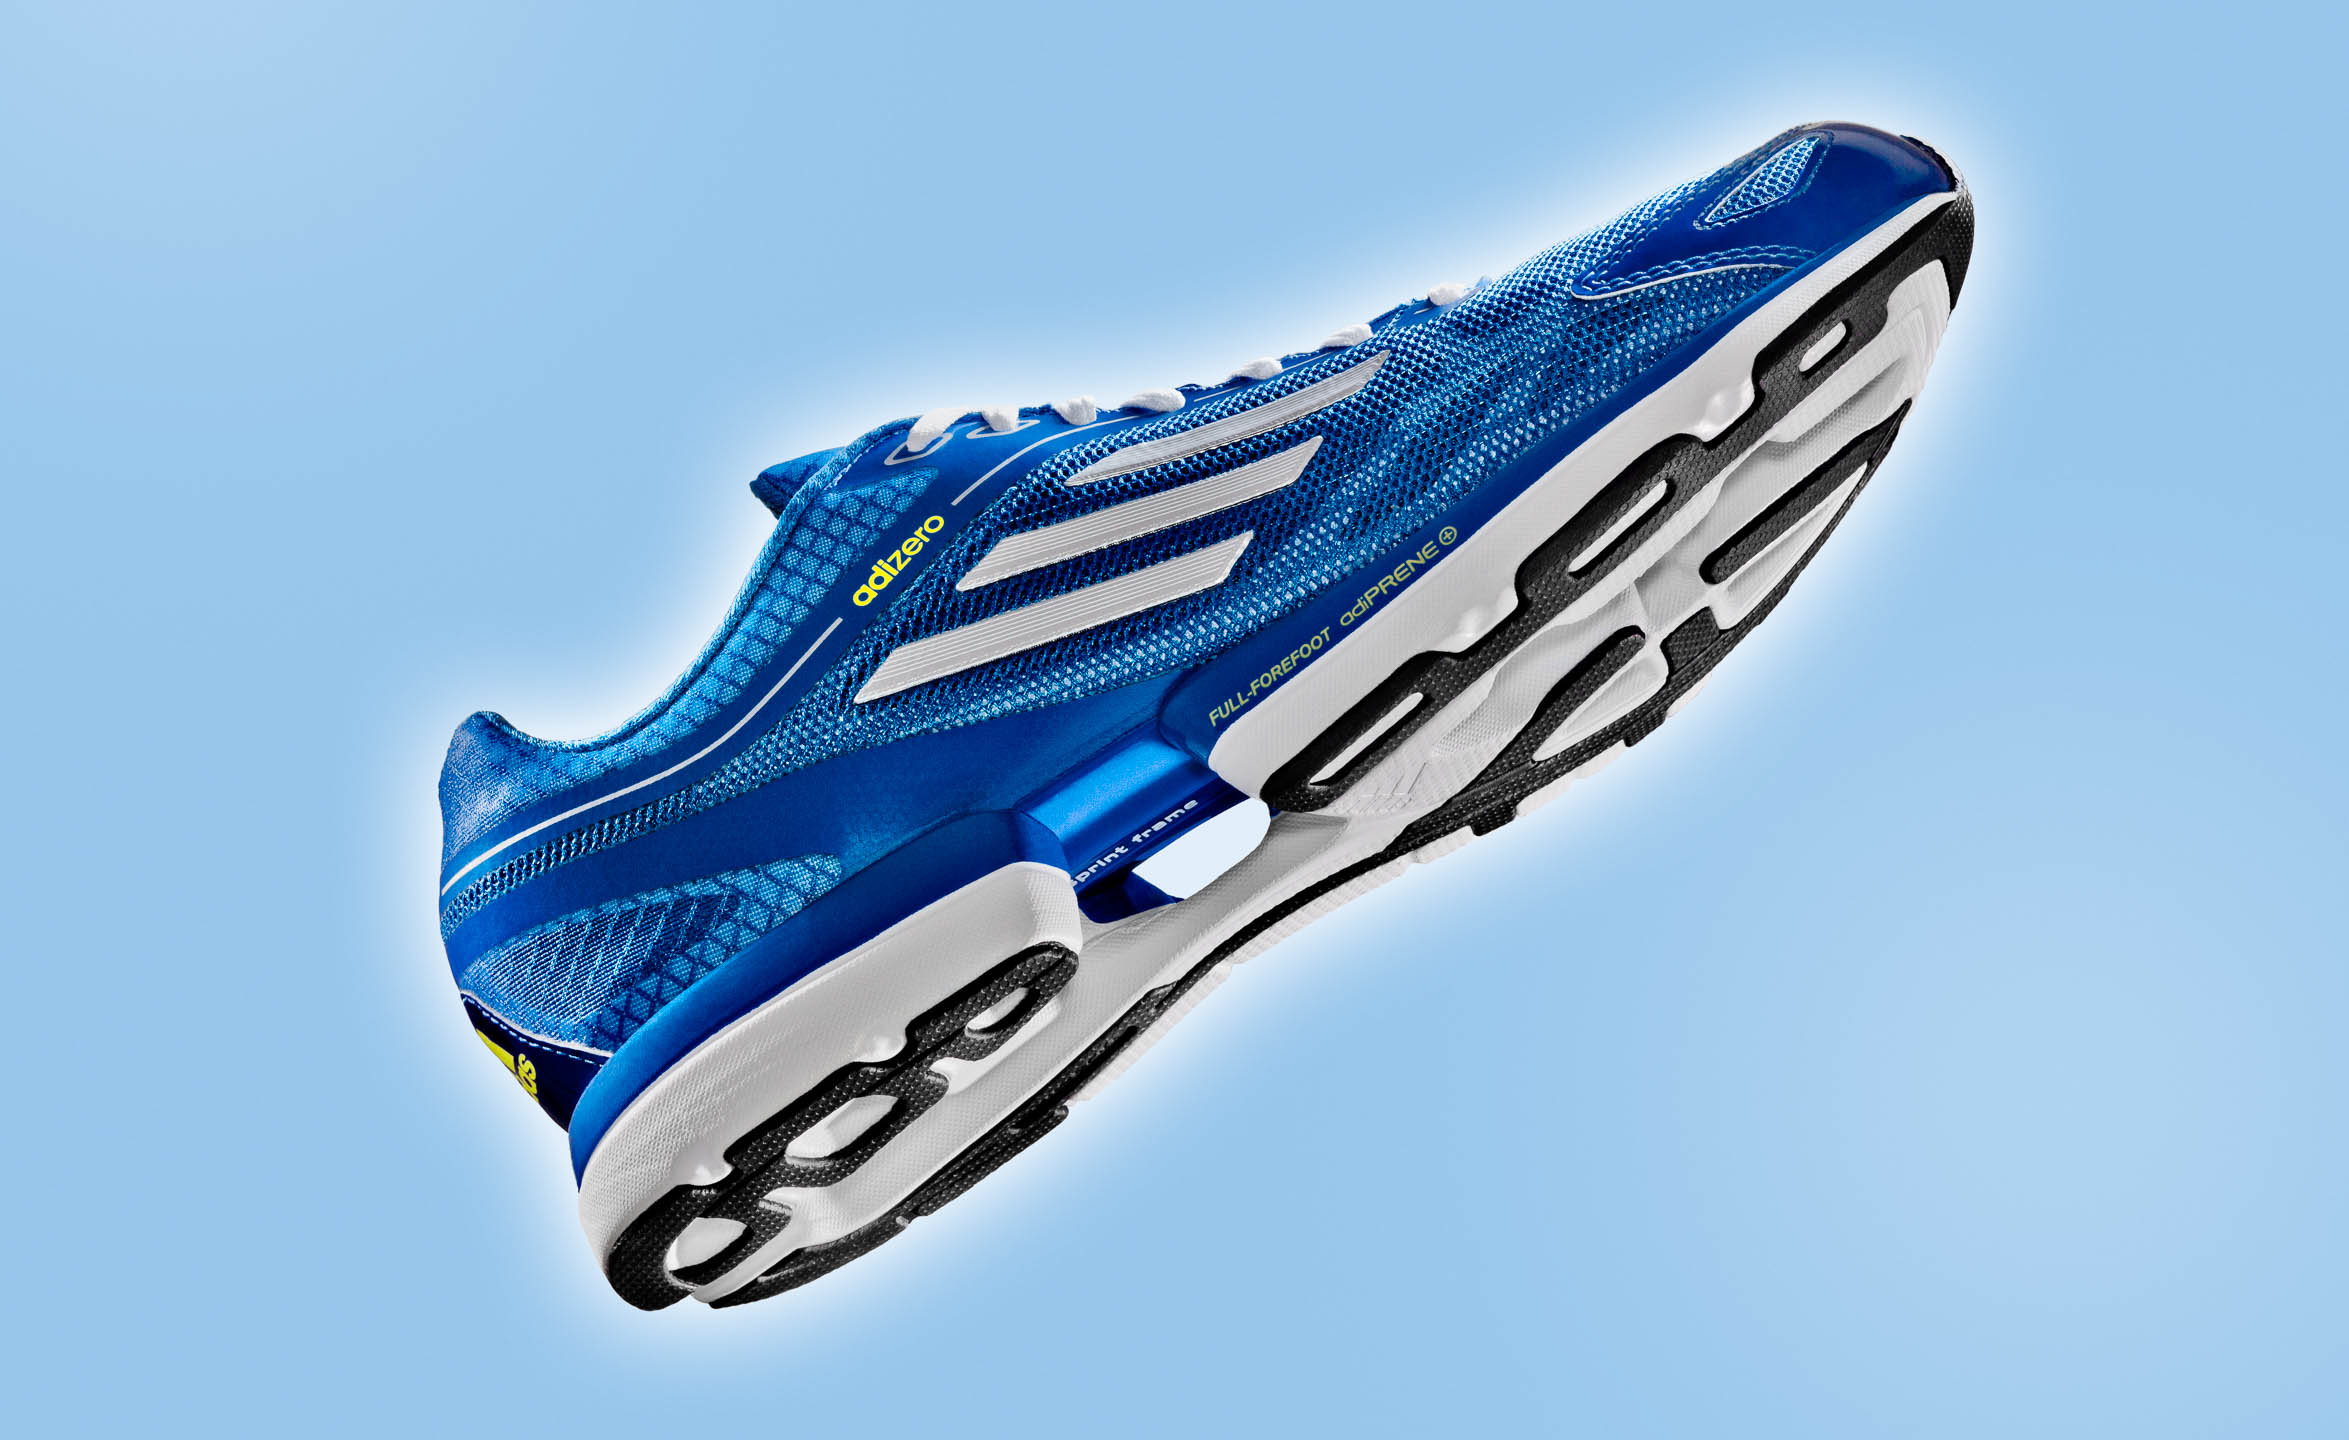 Adidas Adizero running footwear by Steve Temple Photography